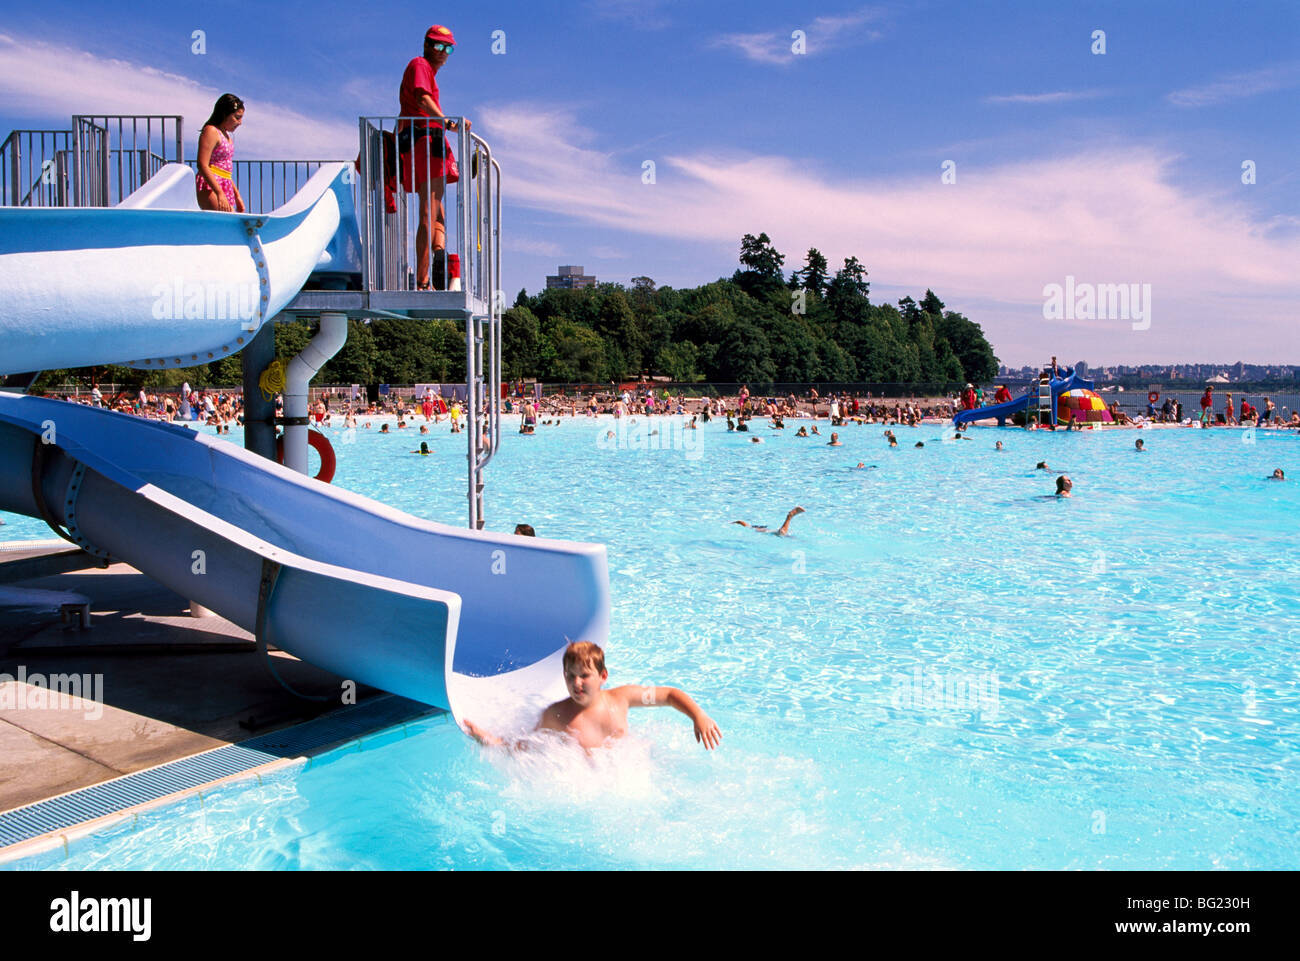 Children 39 S Water Slide At Outdoor Swimming Pool Stanley